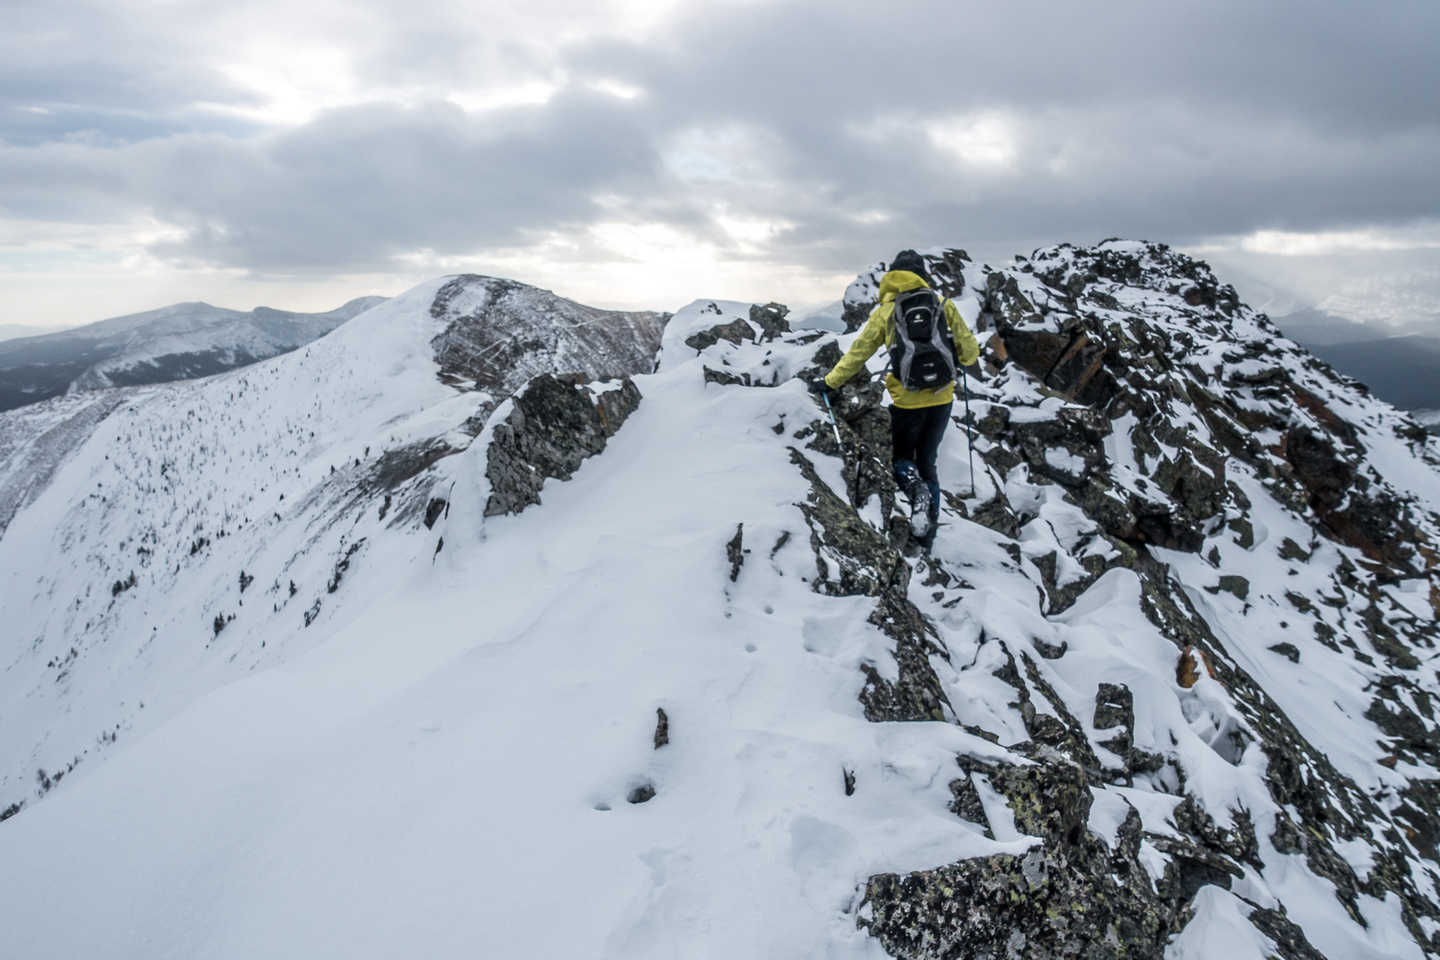 With snow and strong winds our job was slightly more complicated than normal on this peak.